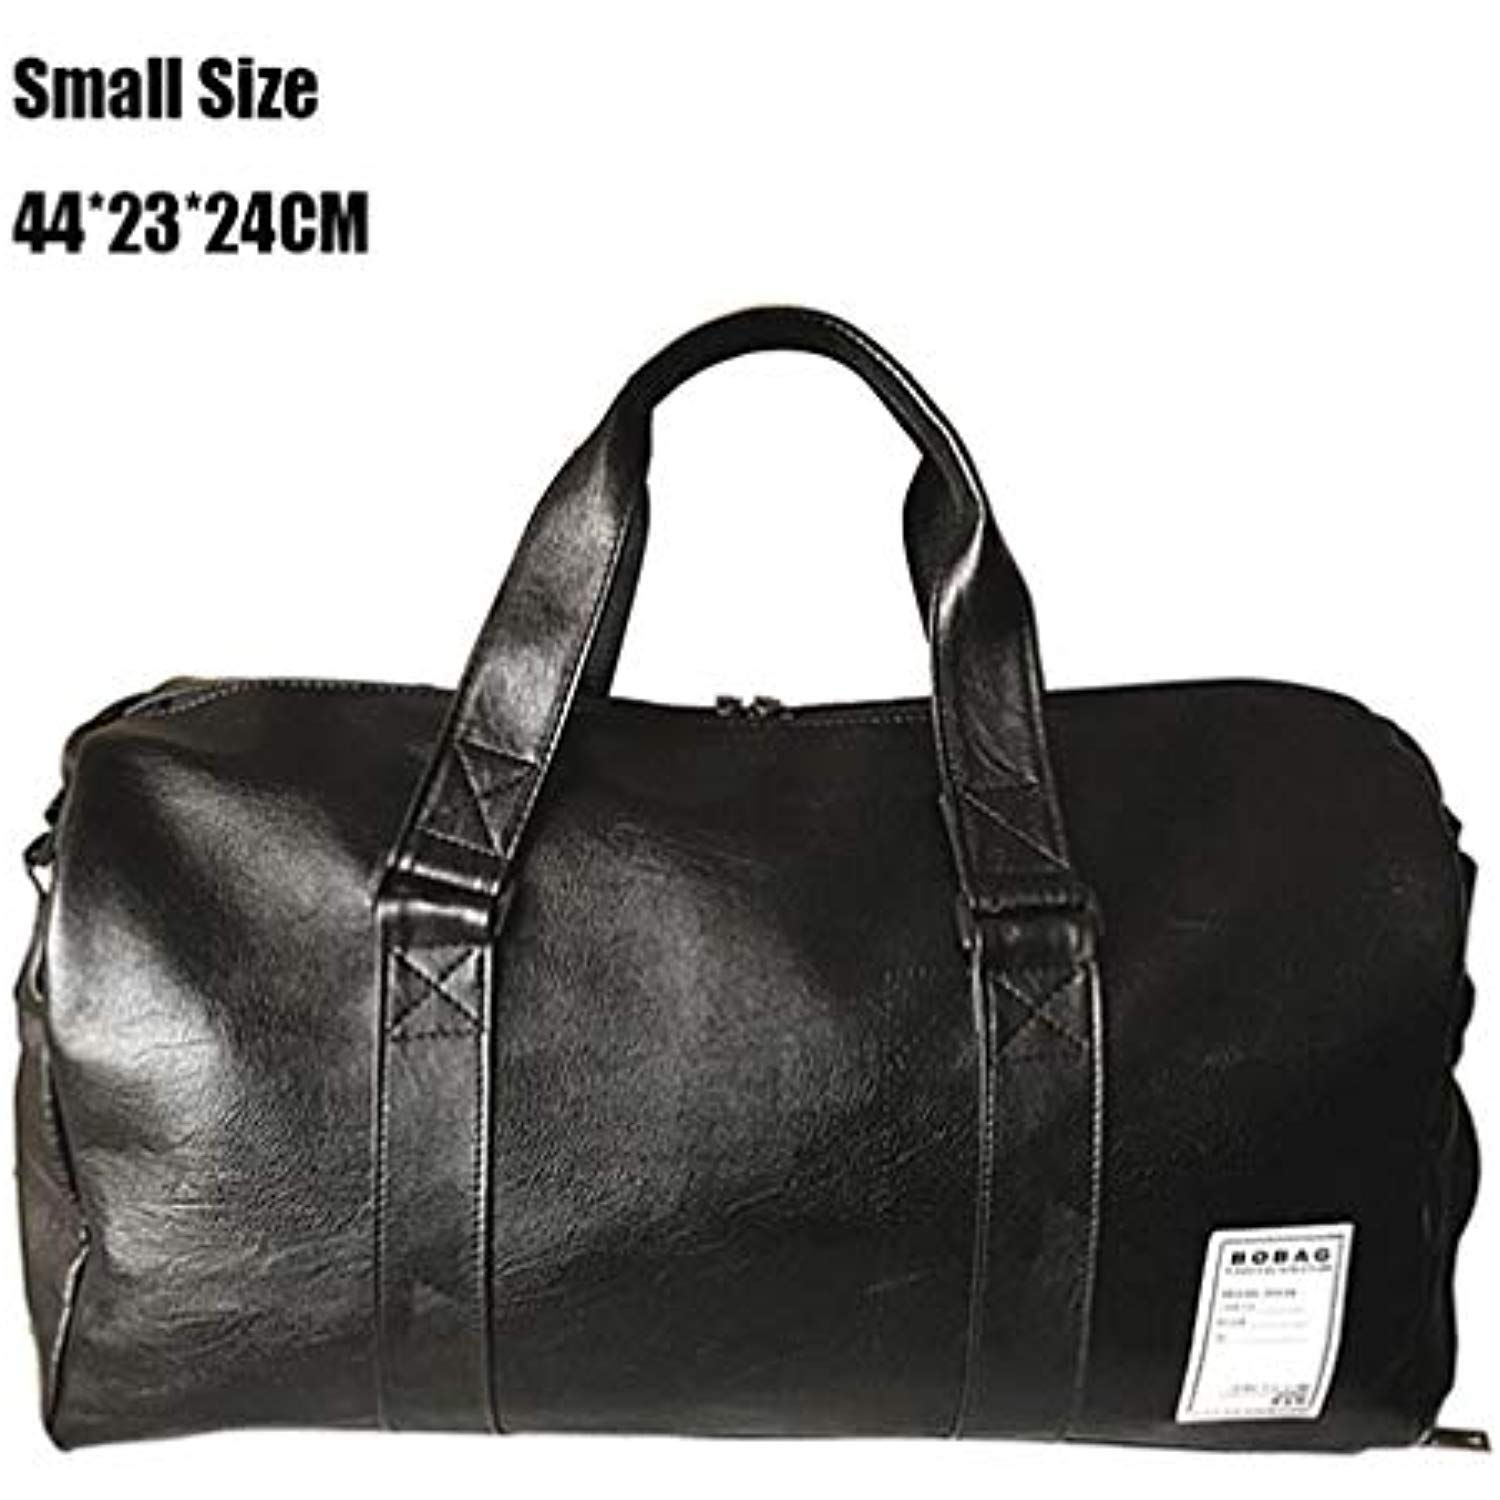 35561a708393 CLHFJ Outdoor Waterproof Top PU Leather Men Sports Gym Bags Training ...